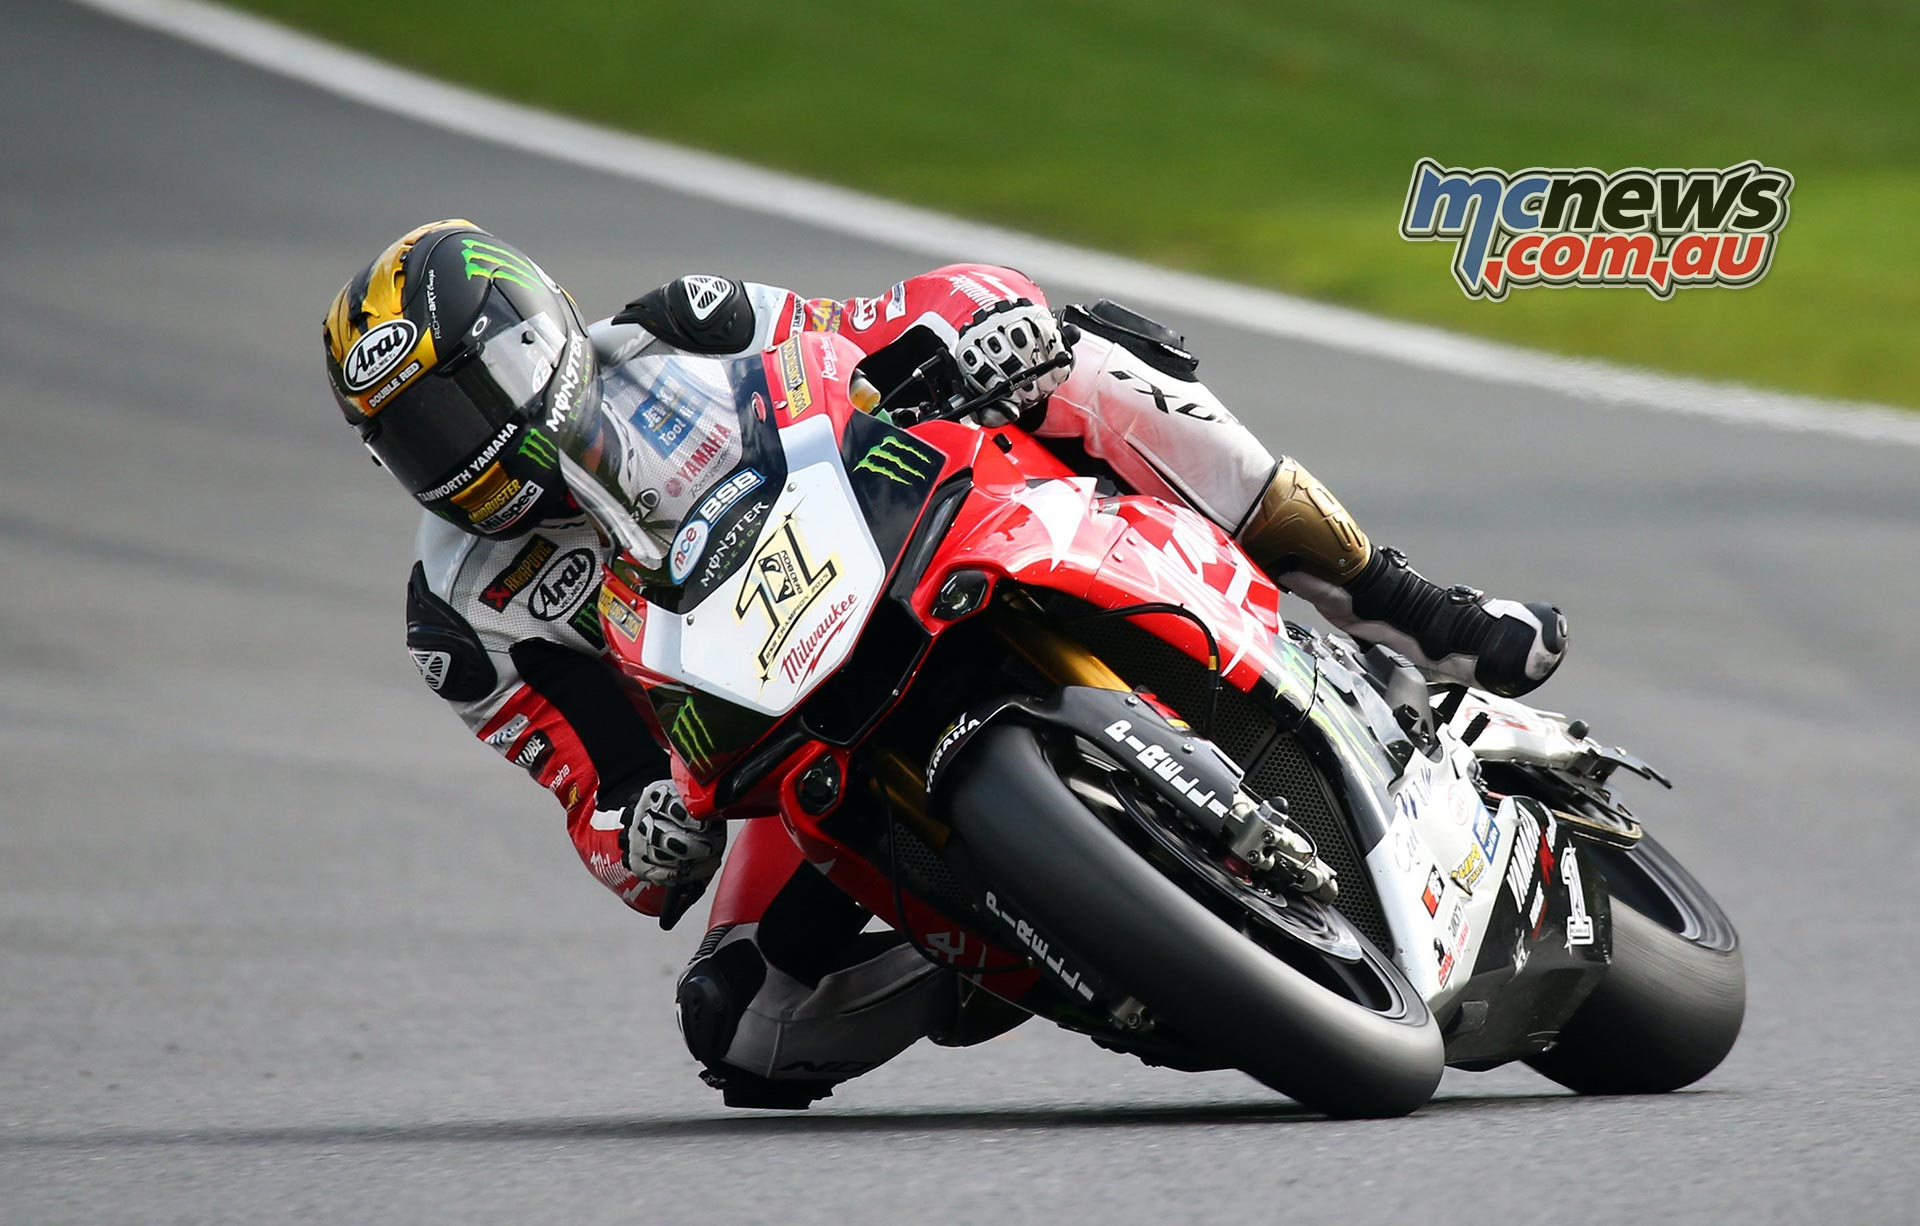 Josh Brookes after winning the 2015 British Superbike Championship